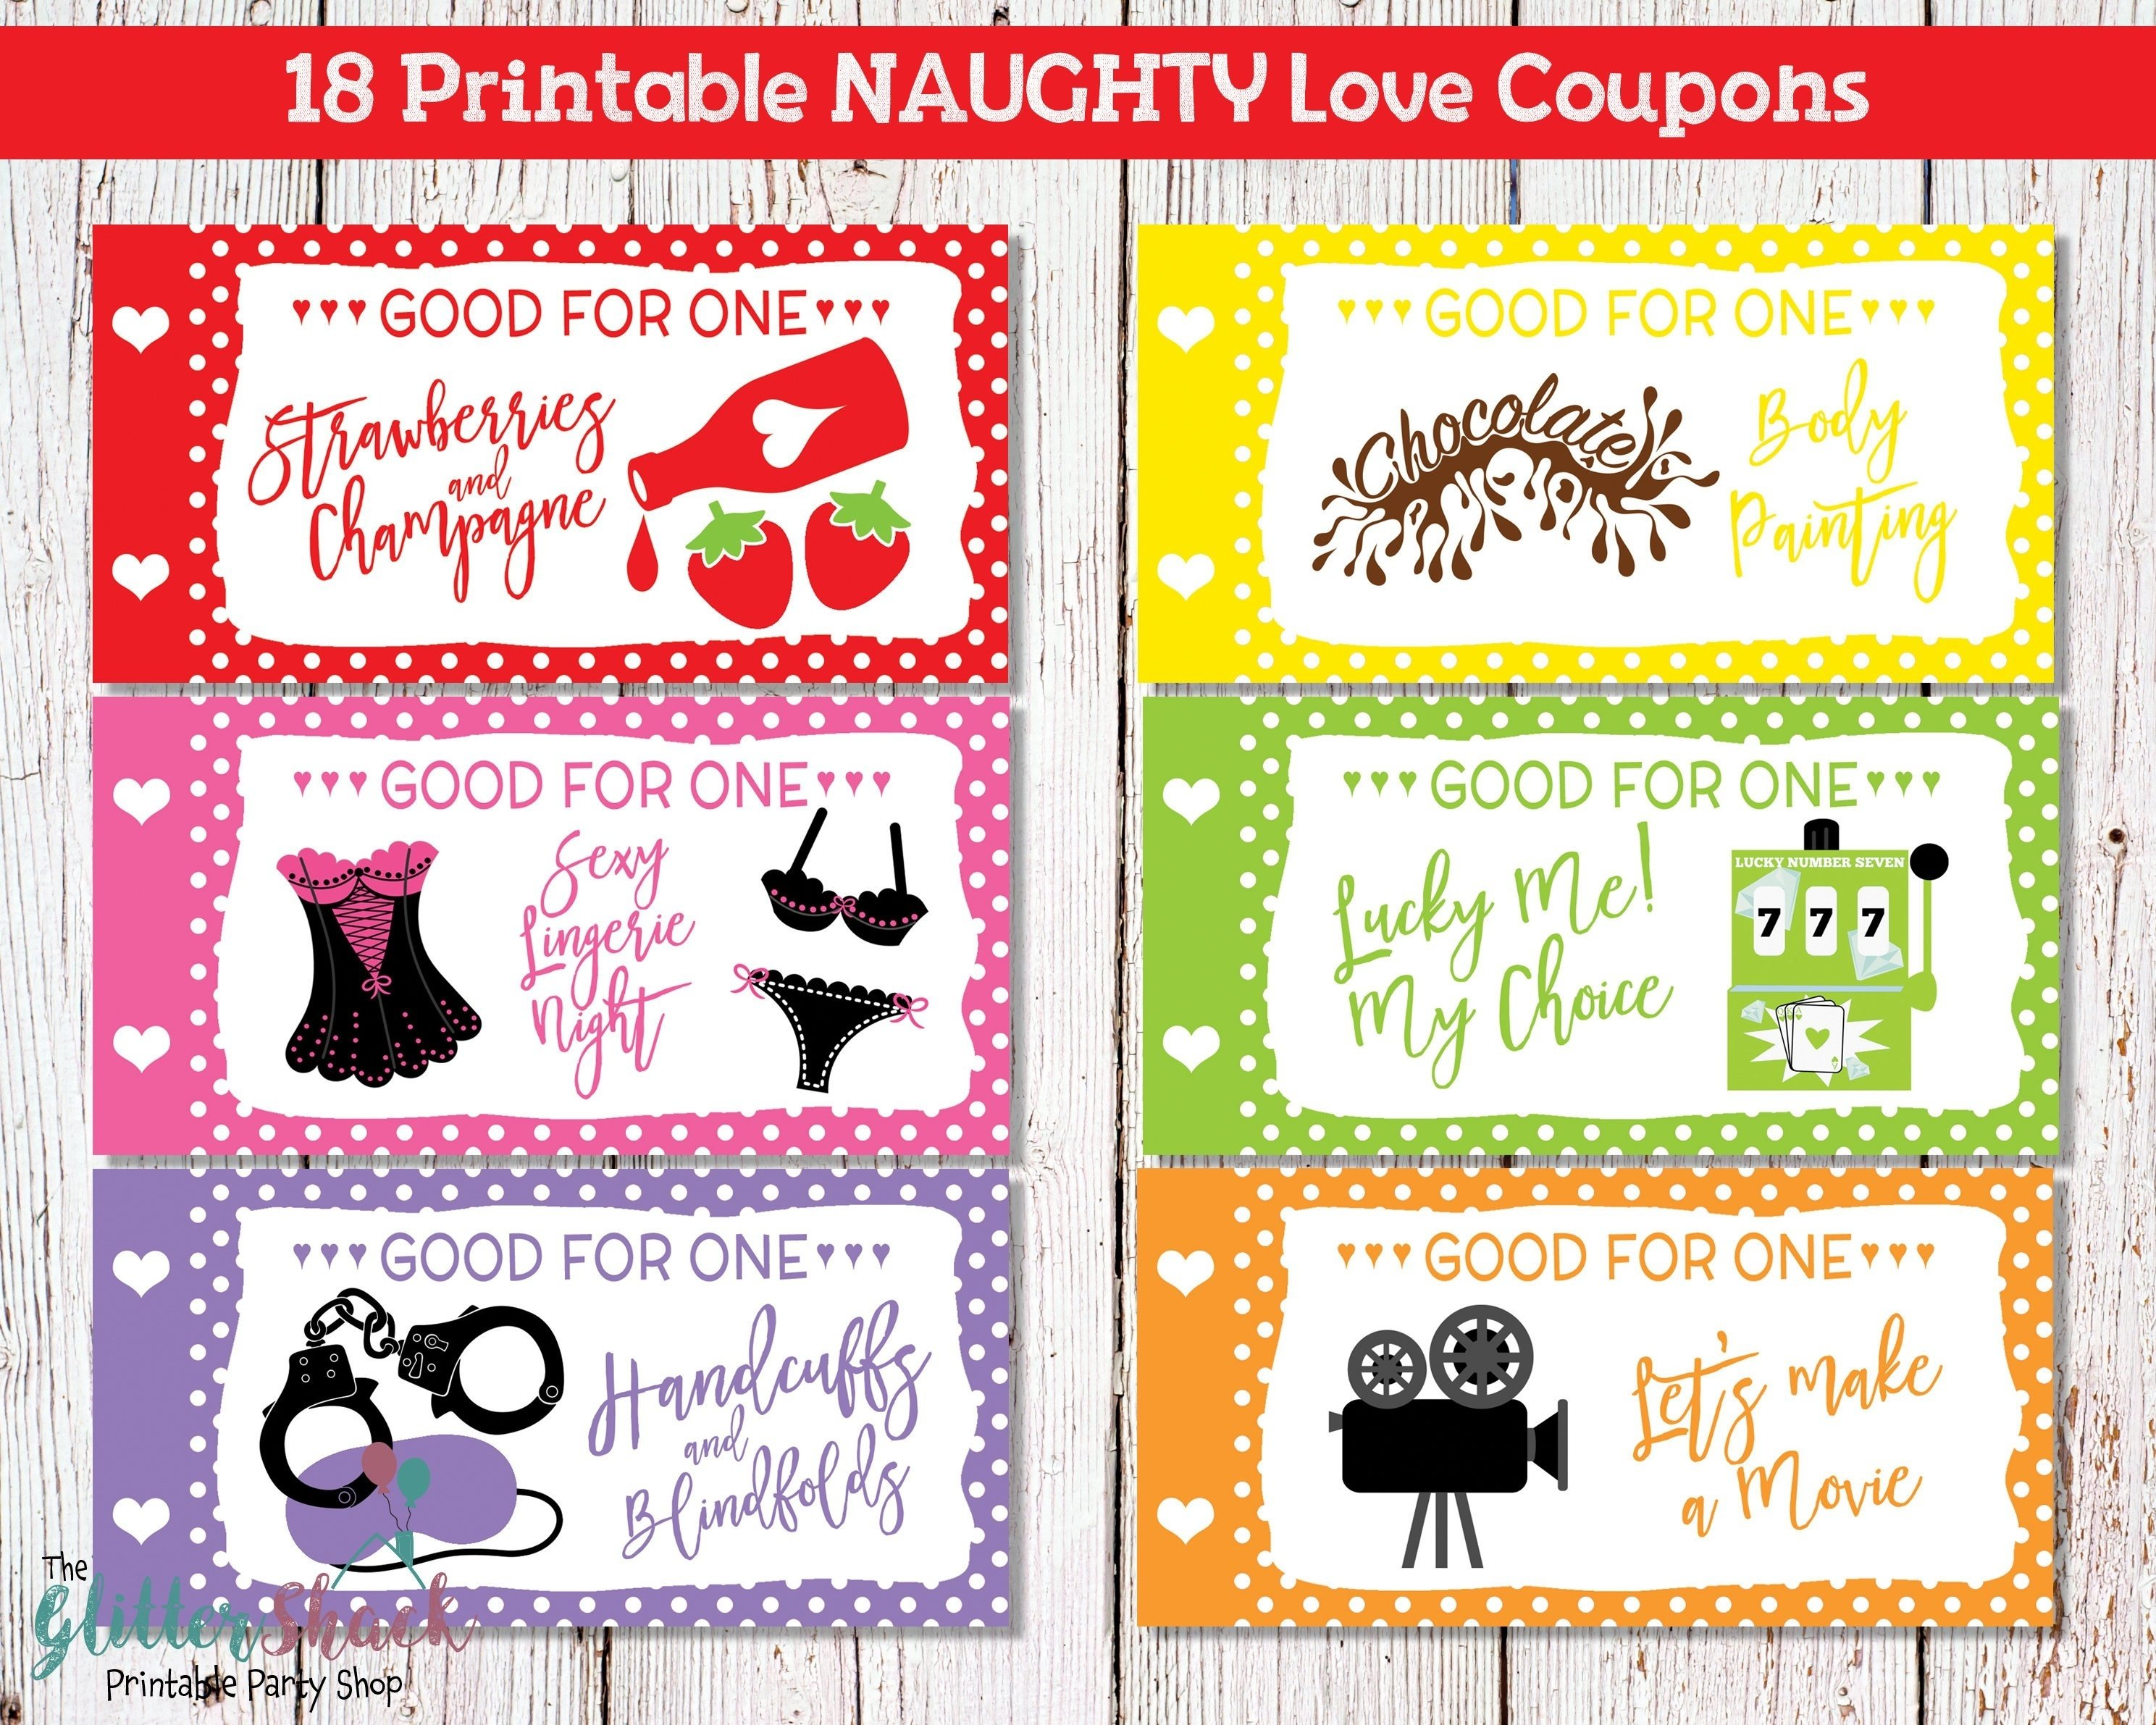 10 Unique Romantic Coupon Ideas For Him printable naughty love coupons for men husband boyfriend sexy 2020